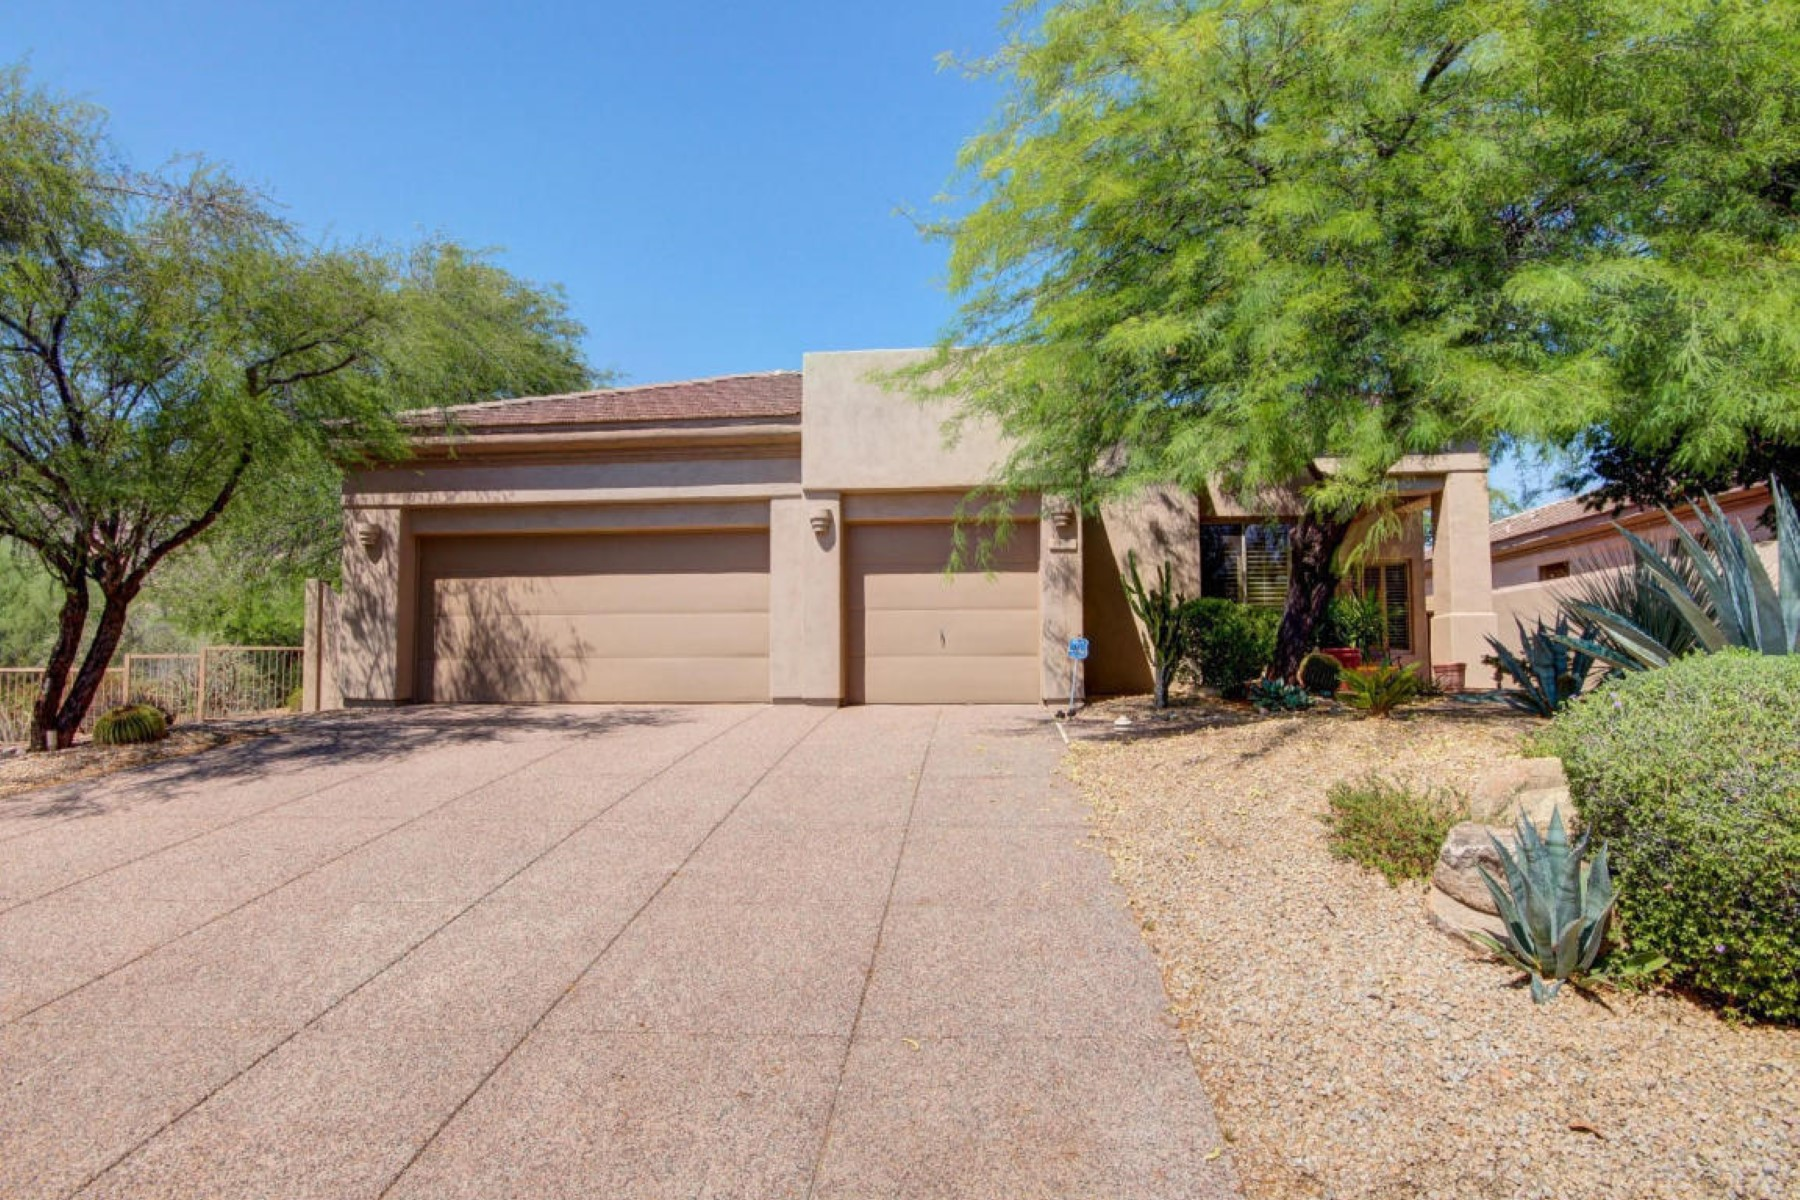 Vivienda unifamiliar por un Venta en Amazing home is situated on one of the most exclusive lots in all of Terravita 6706 E Amber Sun Dr Scottsdale, Arizona 85266 Estados Unidos